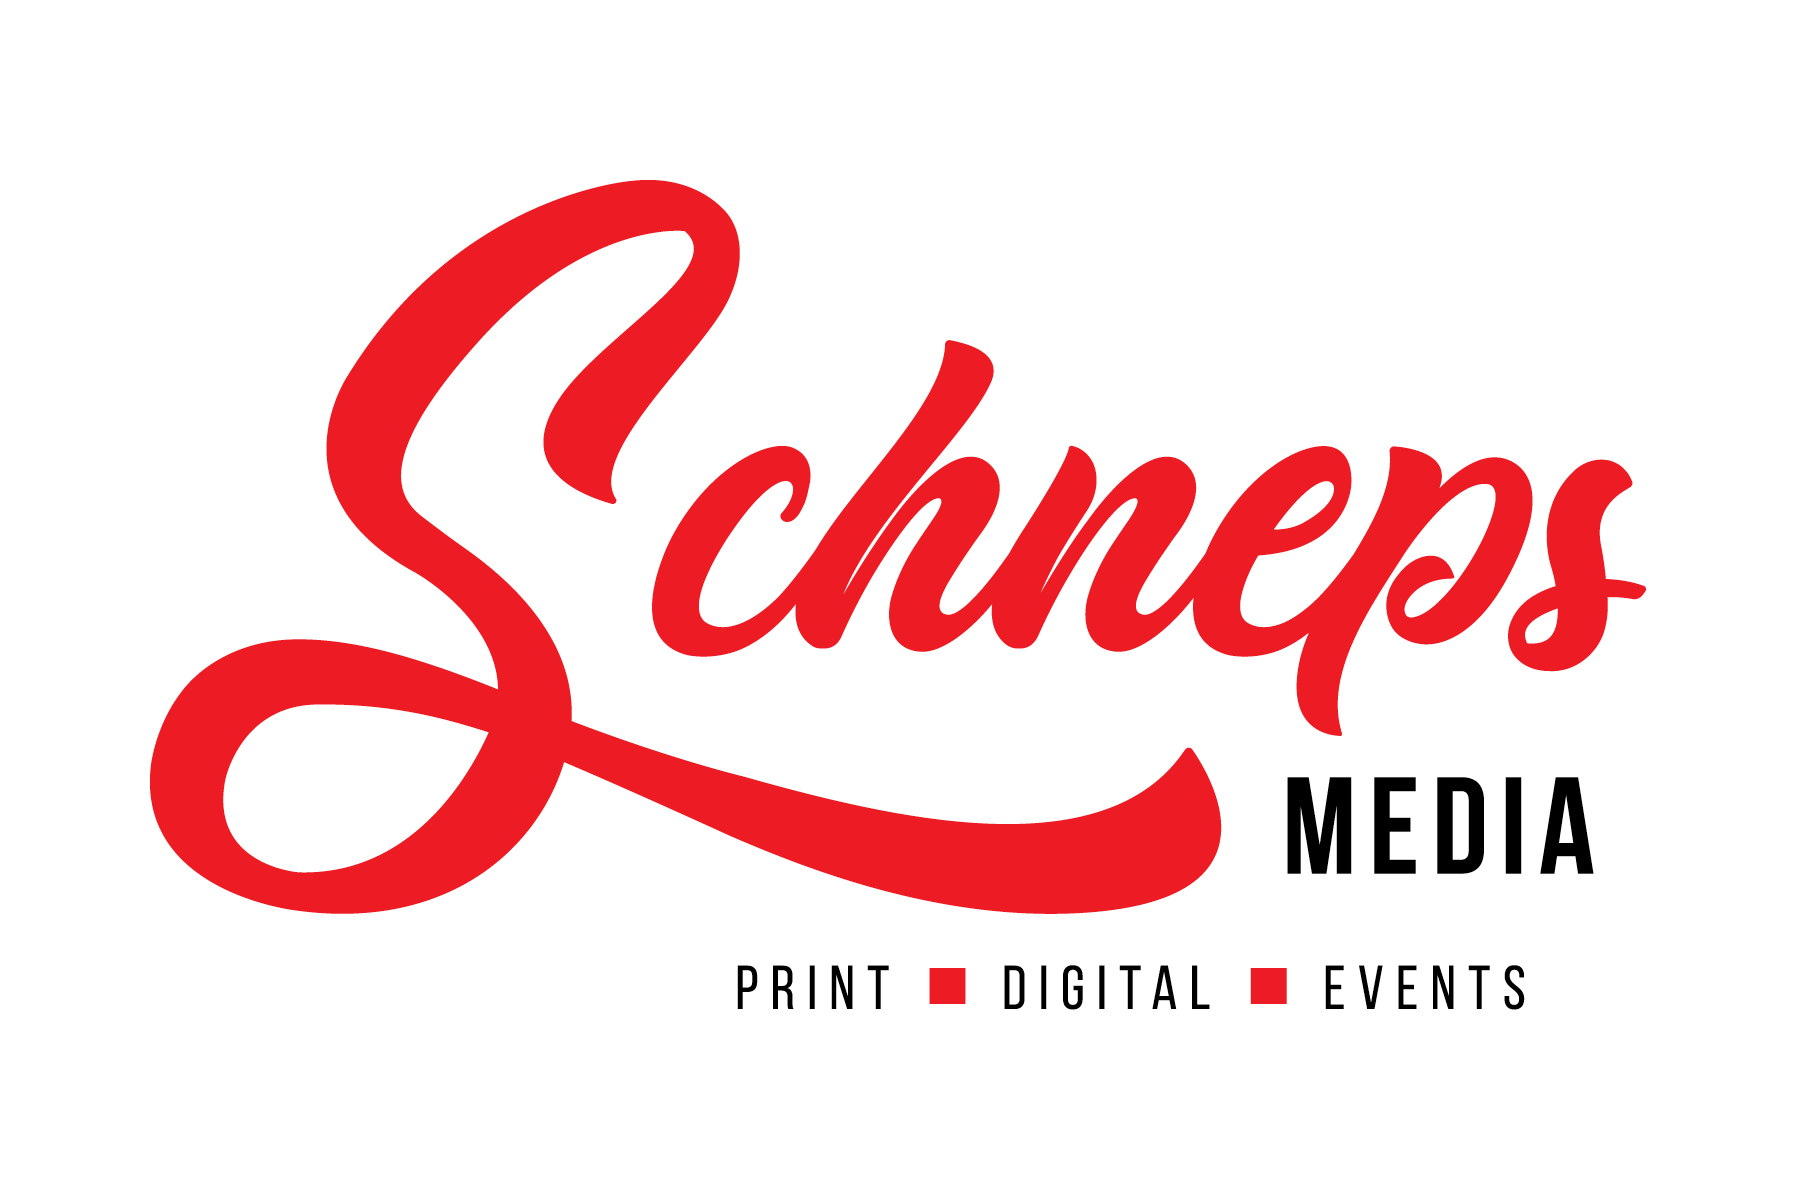 Schneps Media Final Logo.jpg